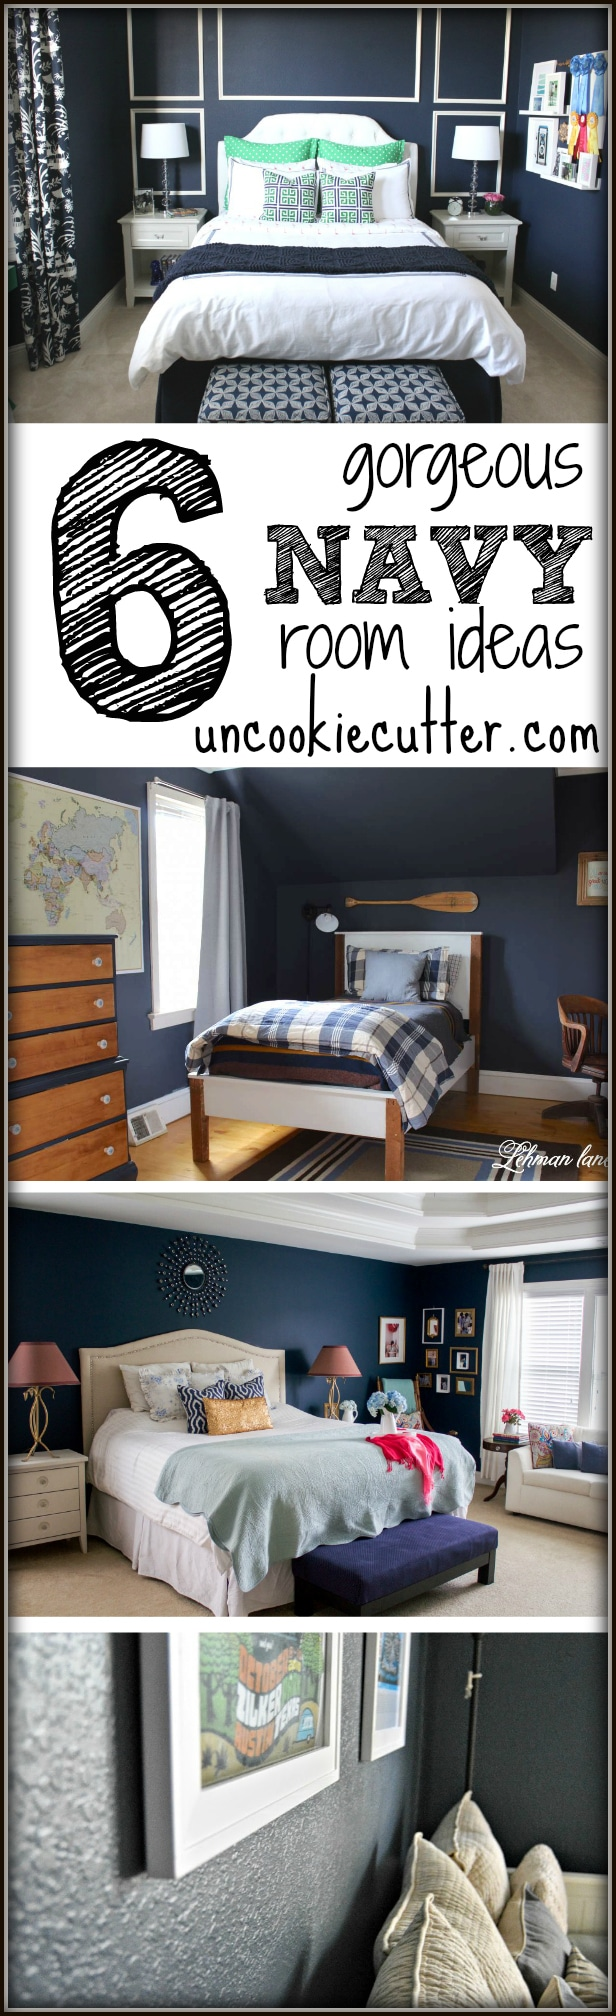 6 gorgeous ideas for Navy rooms - UncookieCutter.com